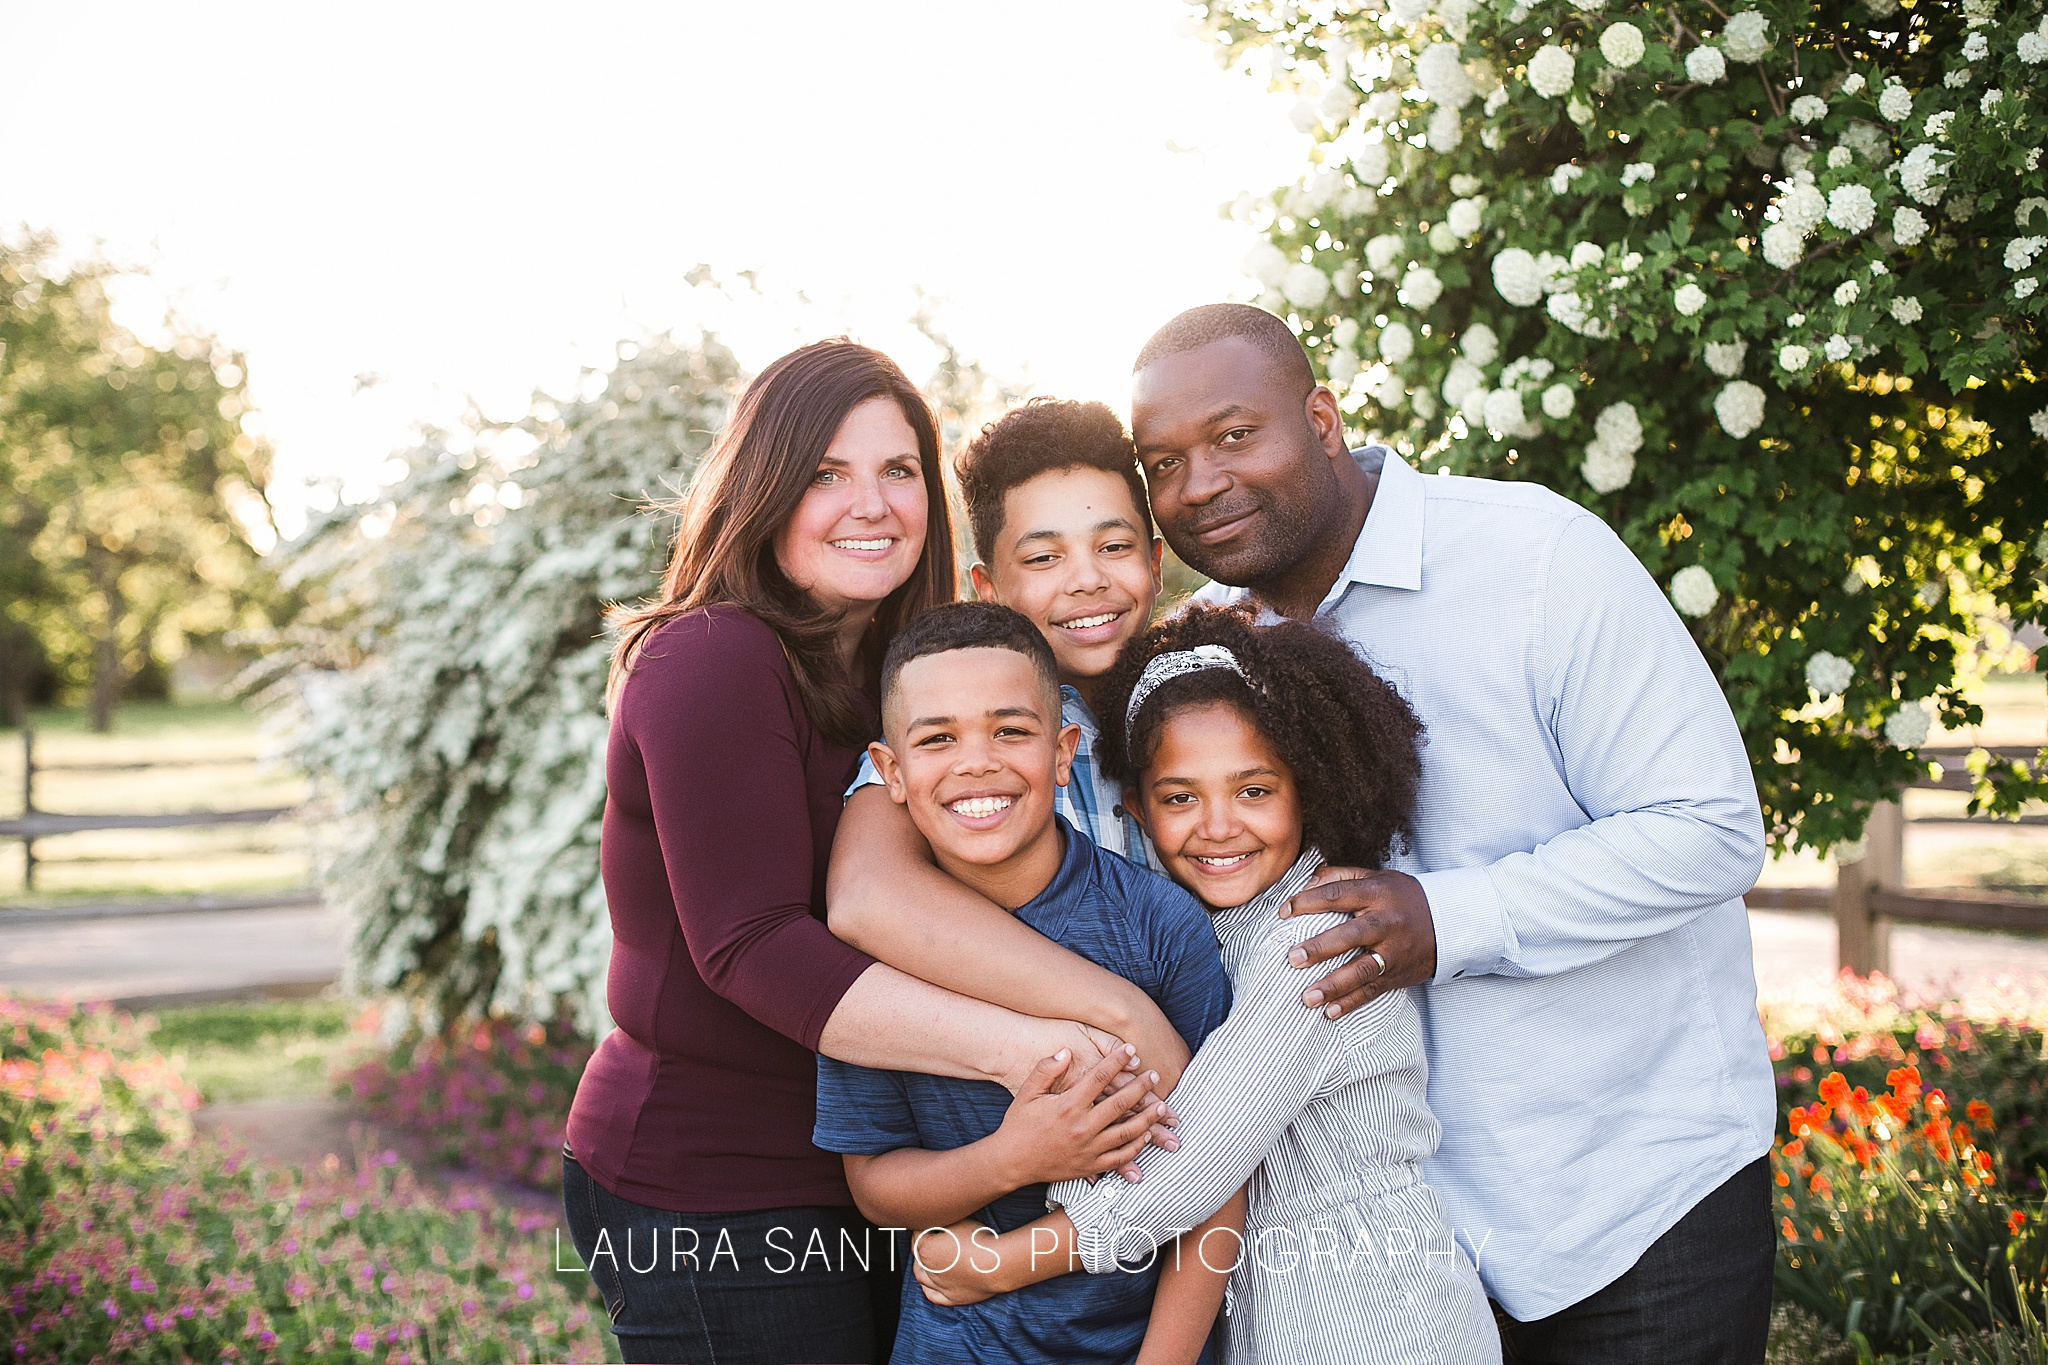 Laura Santos Photography Portland Oregon Family Photographer_0930.jpg